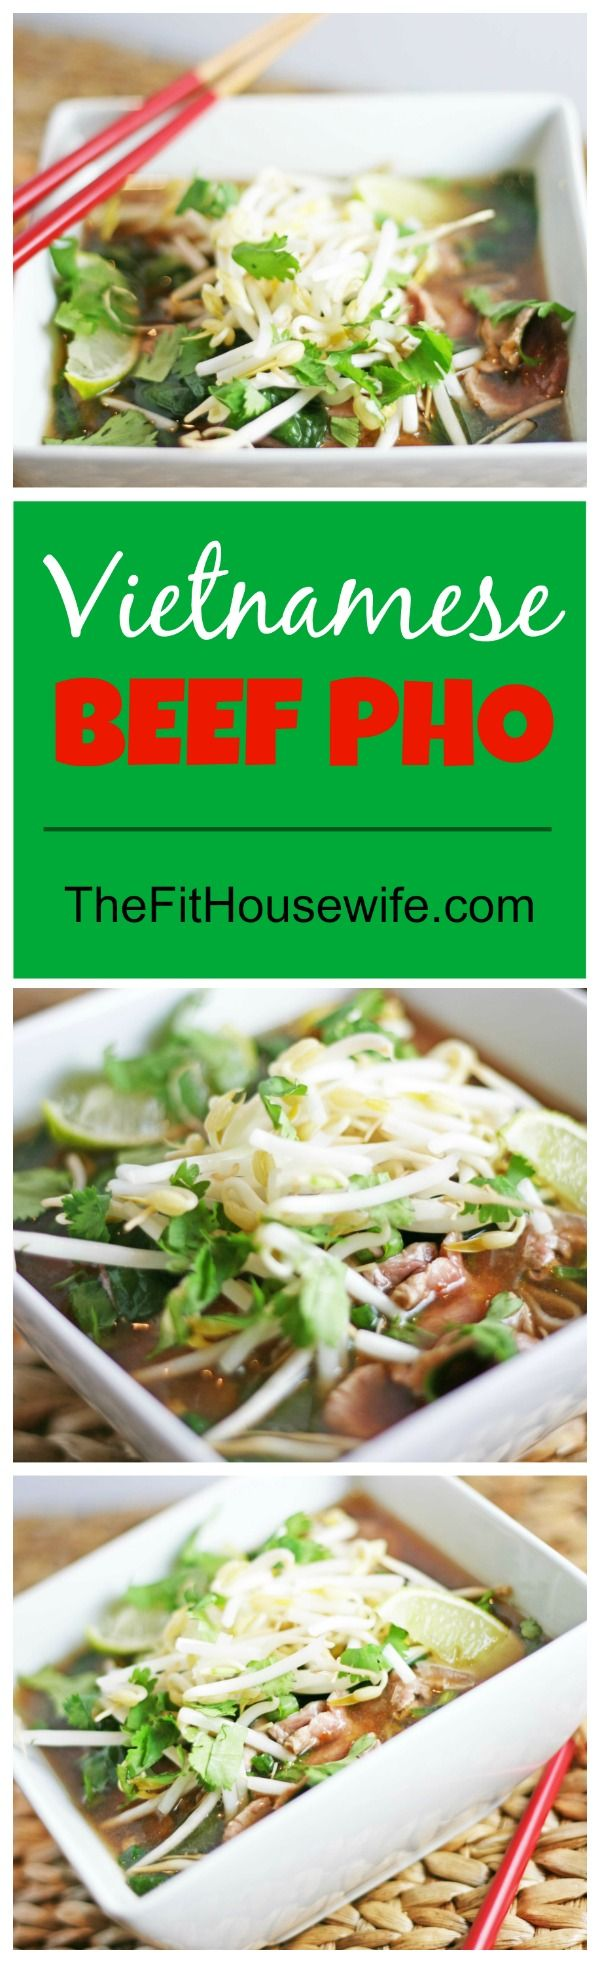 Vietnamese Beef Pho. A flavourful soup that you can make at home. Healthy recipe.